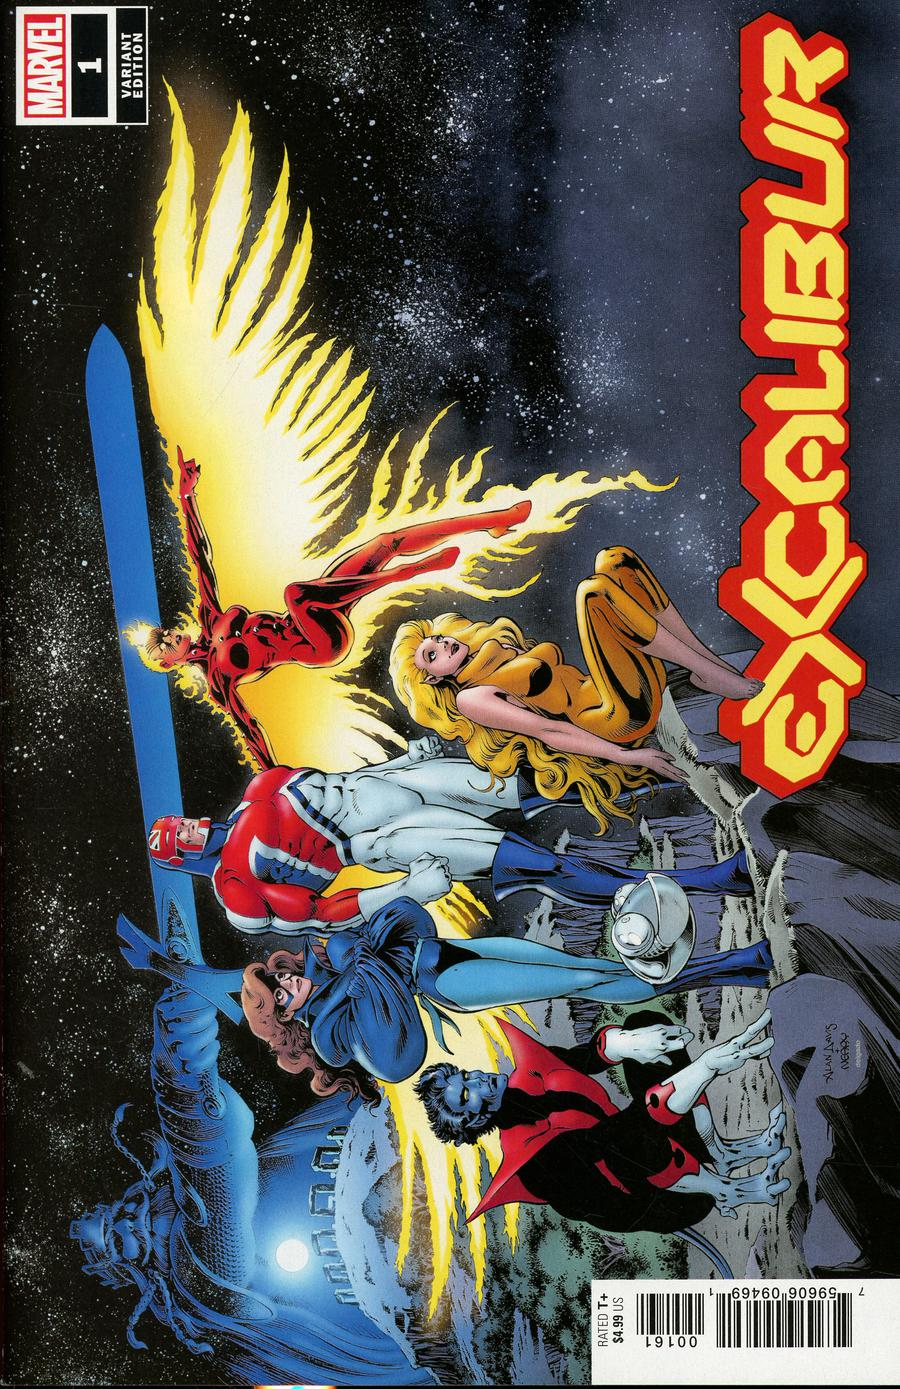 Excalibur Vol 4 #1 Cover G Incentive Alan Davis Hidden Gem Variant Cover (Dawn Of X Tie-In)